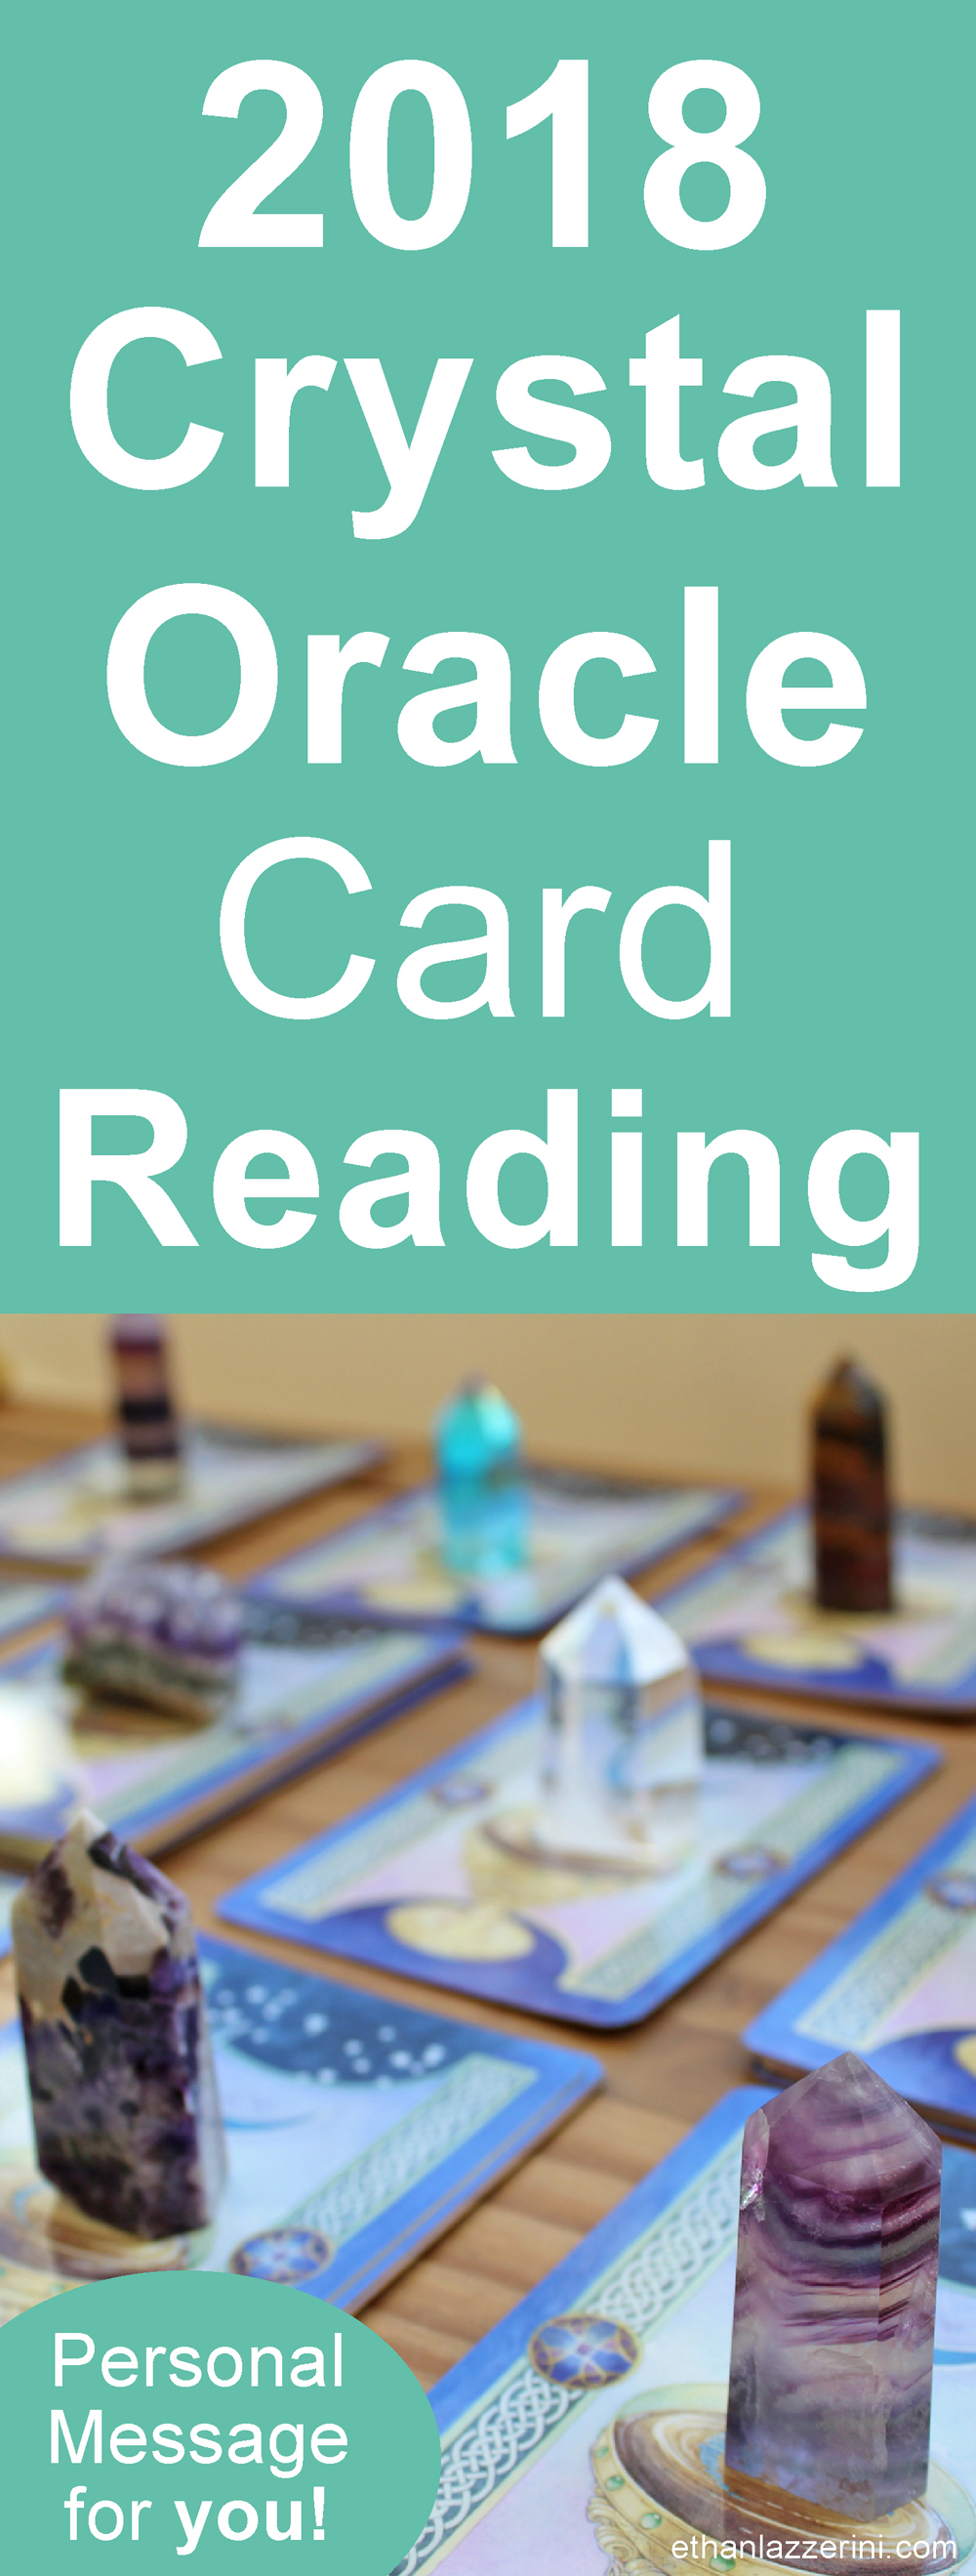 Crystal Oracle Card Reading for 2018